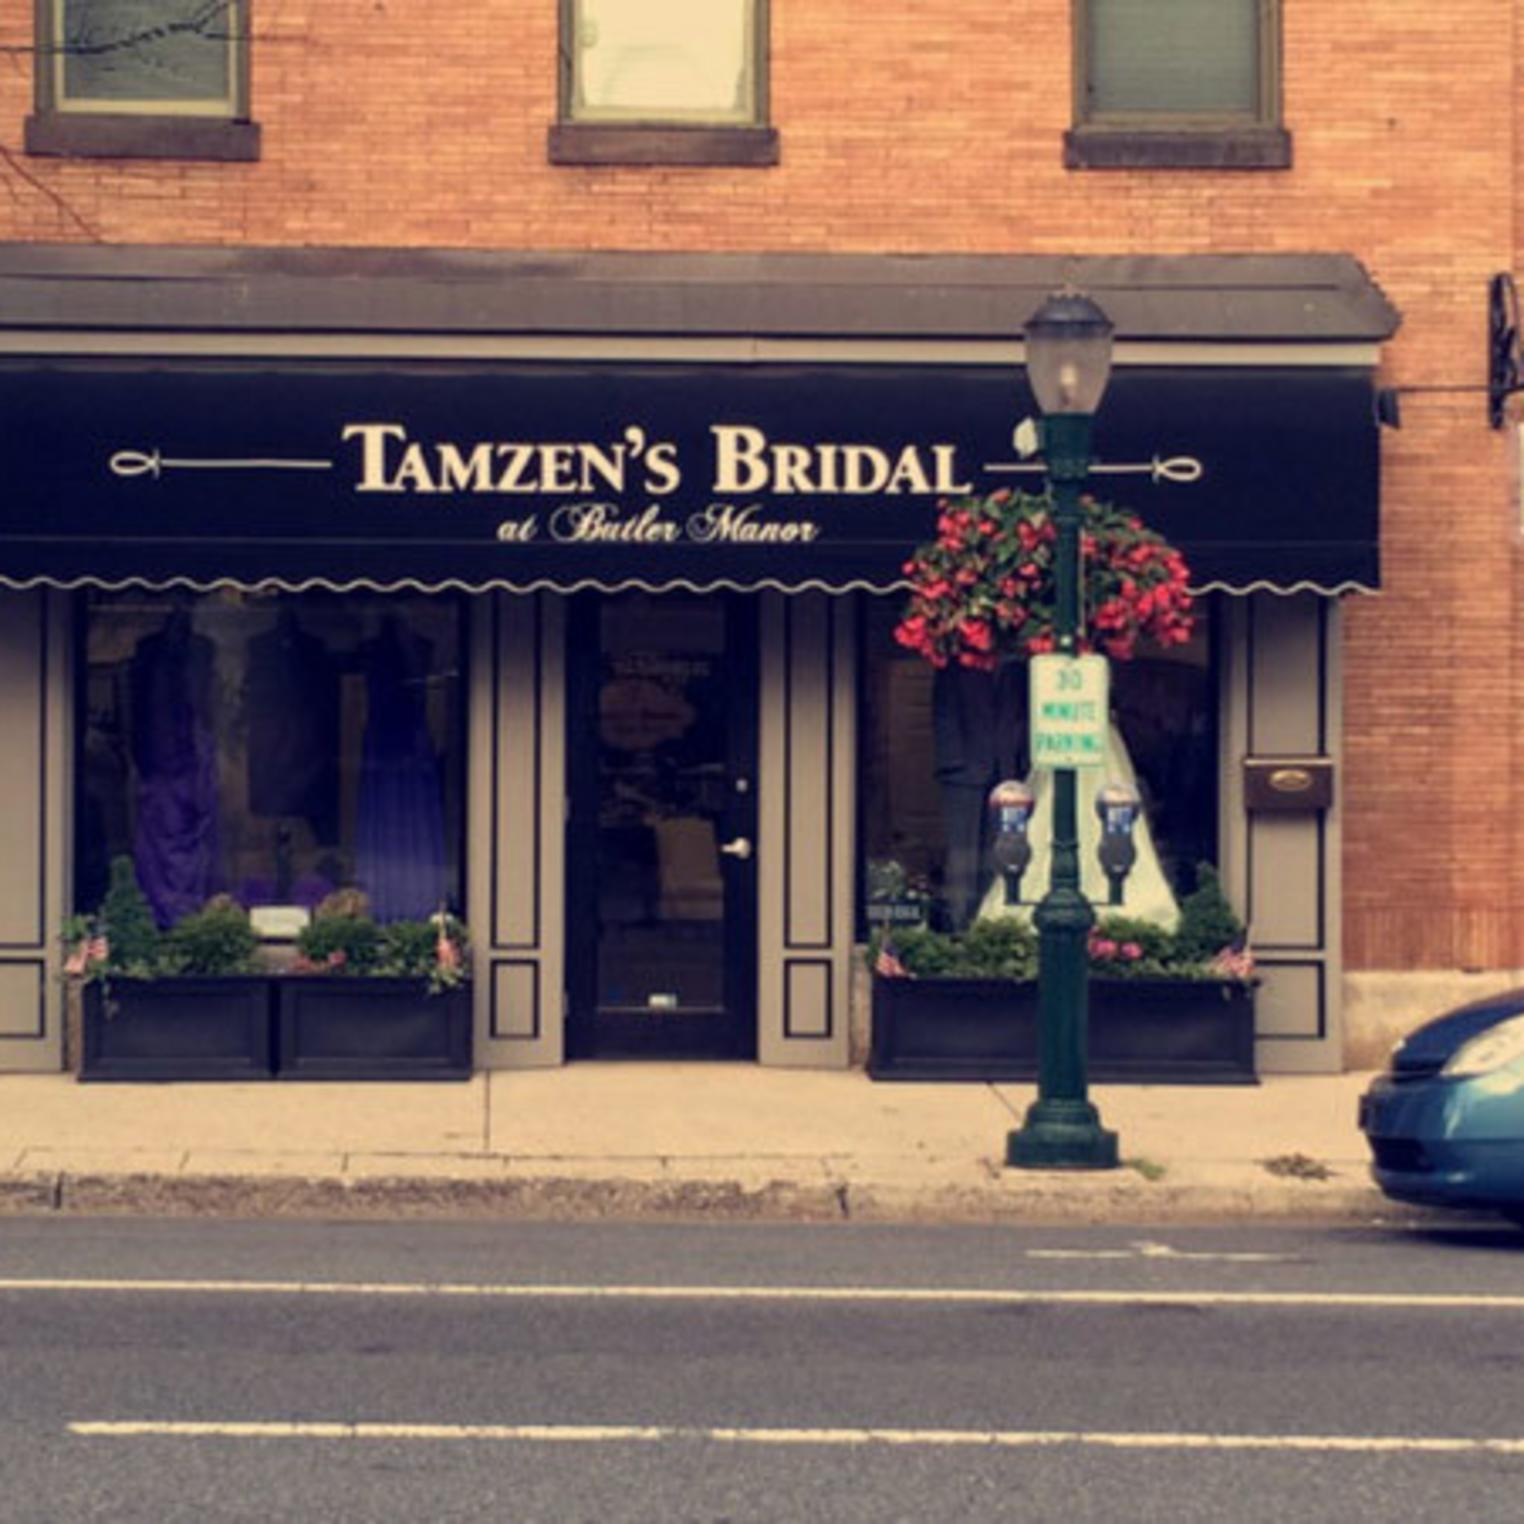 Tamzen's Bridal at Butler Manor